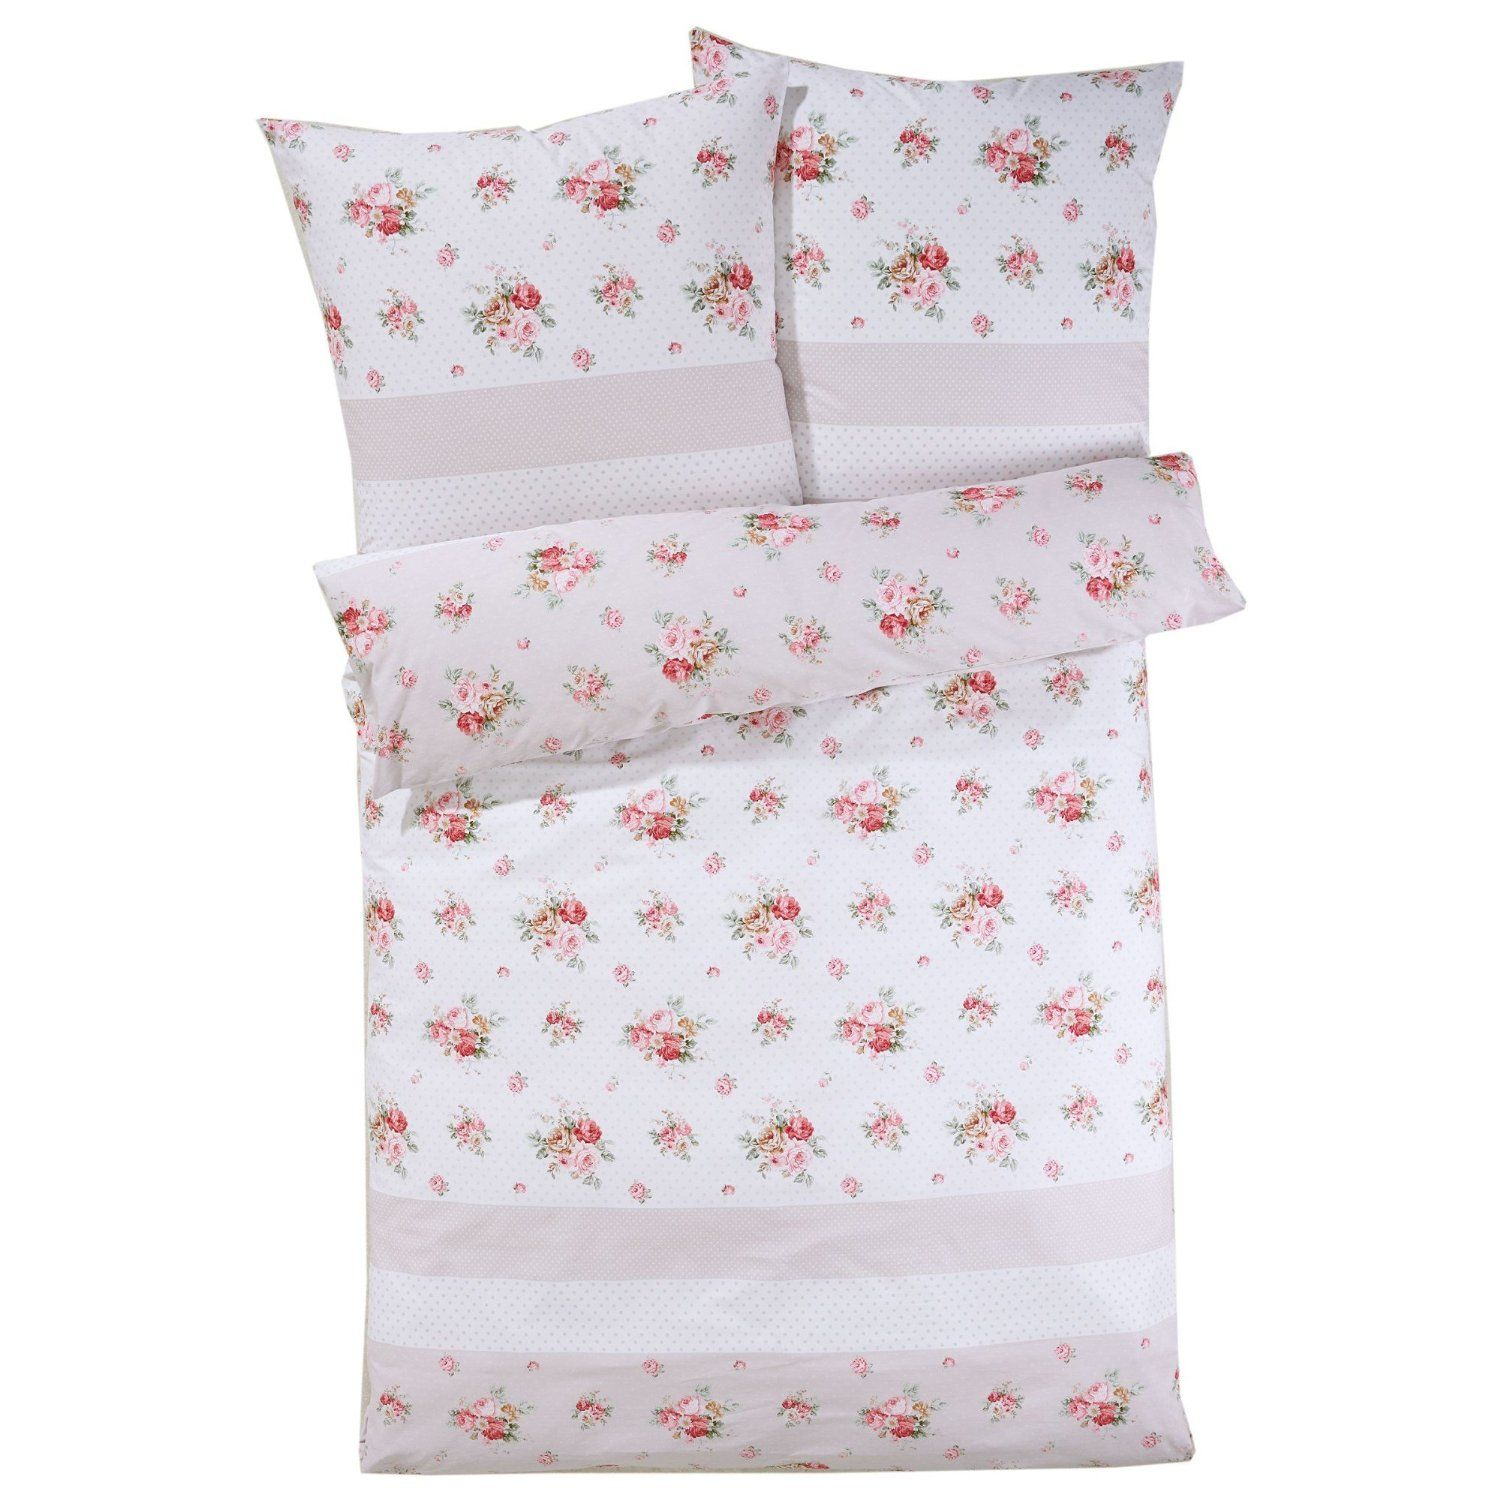 Bettwäsche Rosen Mit Reißverschluss 100 Baumwoll Satin Rosa 135 X 200 Cm Amazon De Küche Haushalt Bedding Sets Kid Beds Girls Bedroom